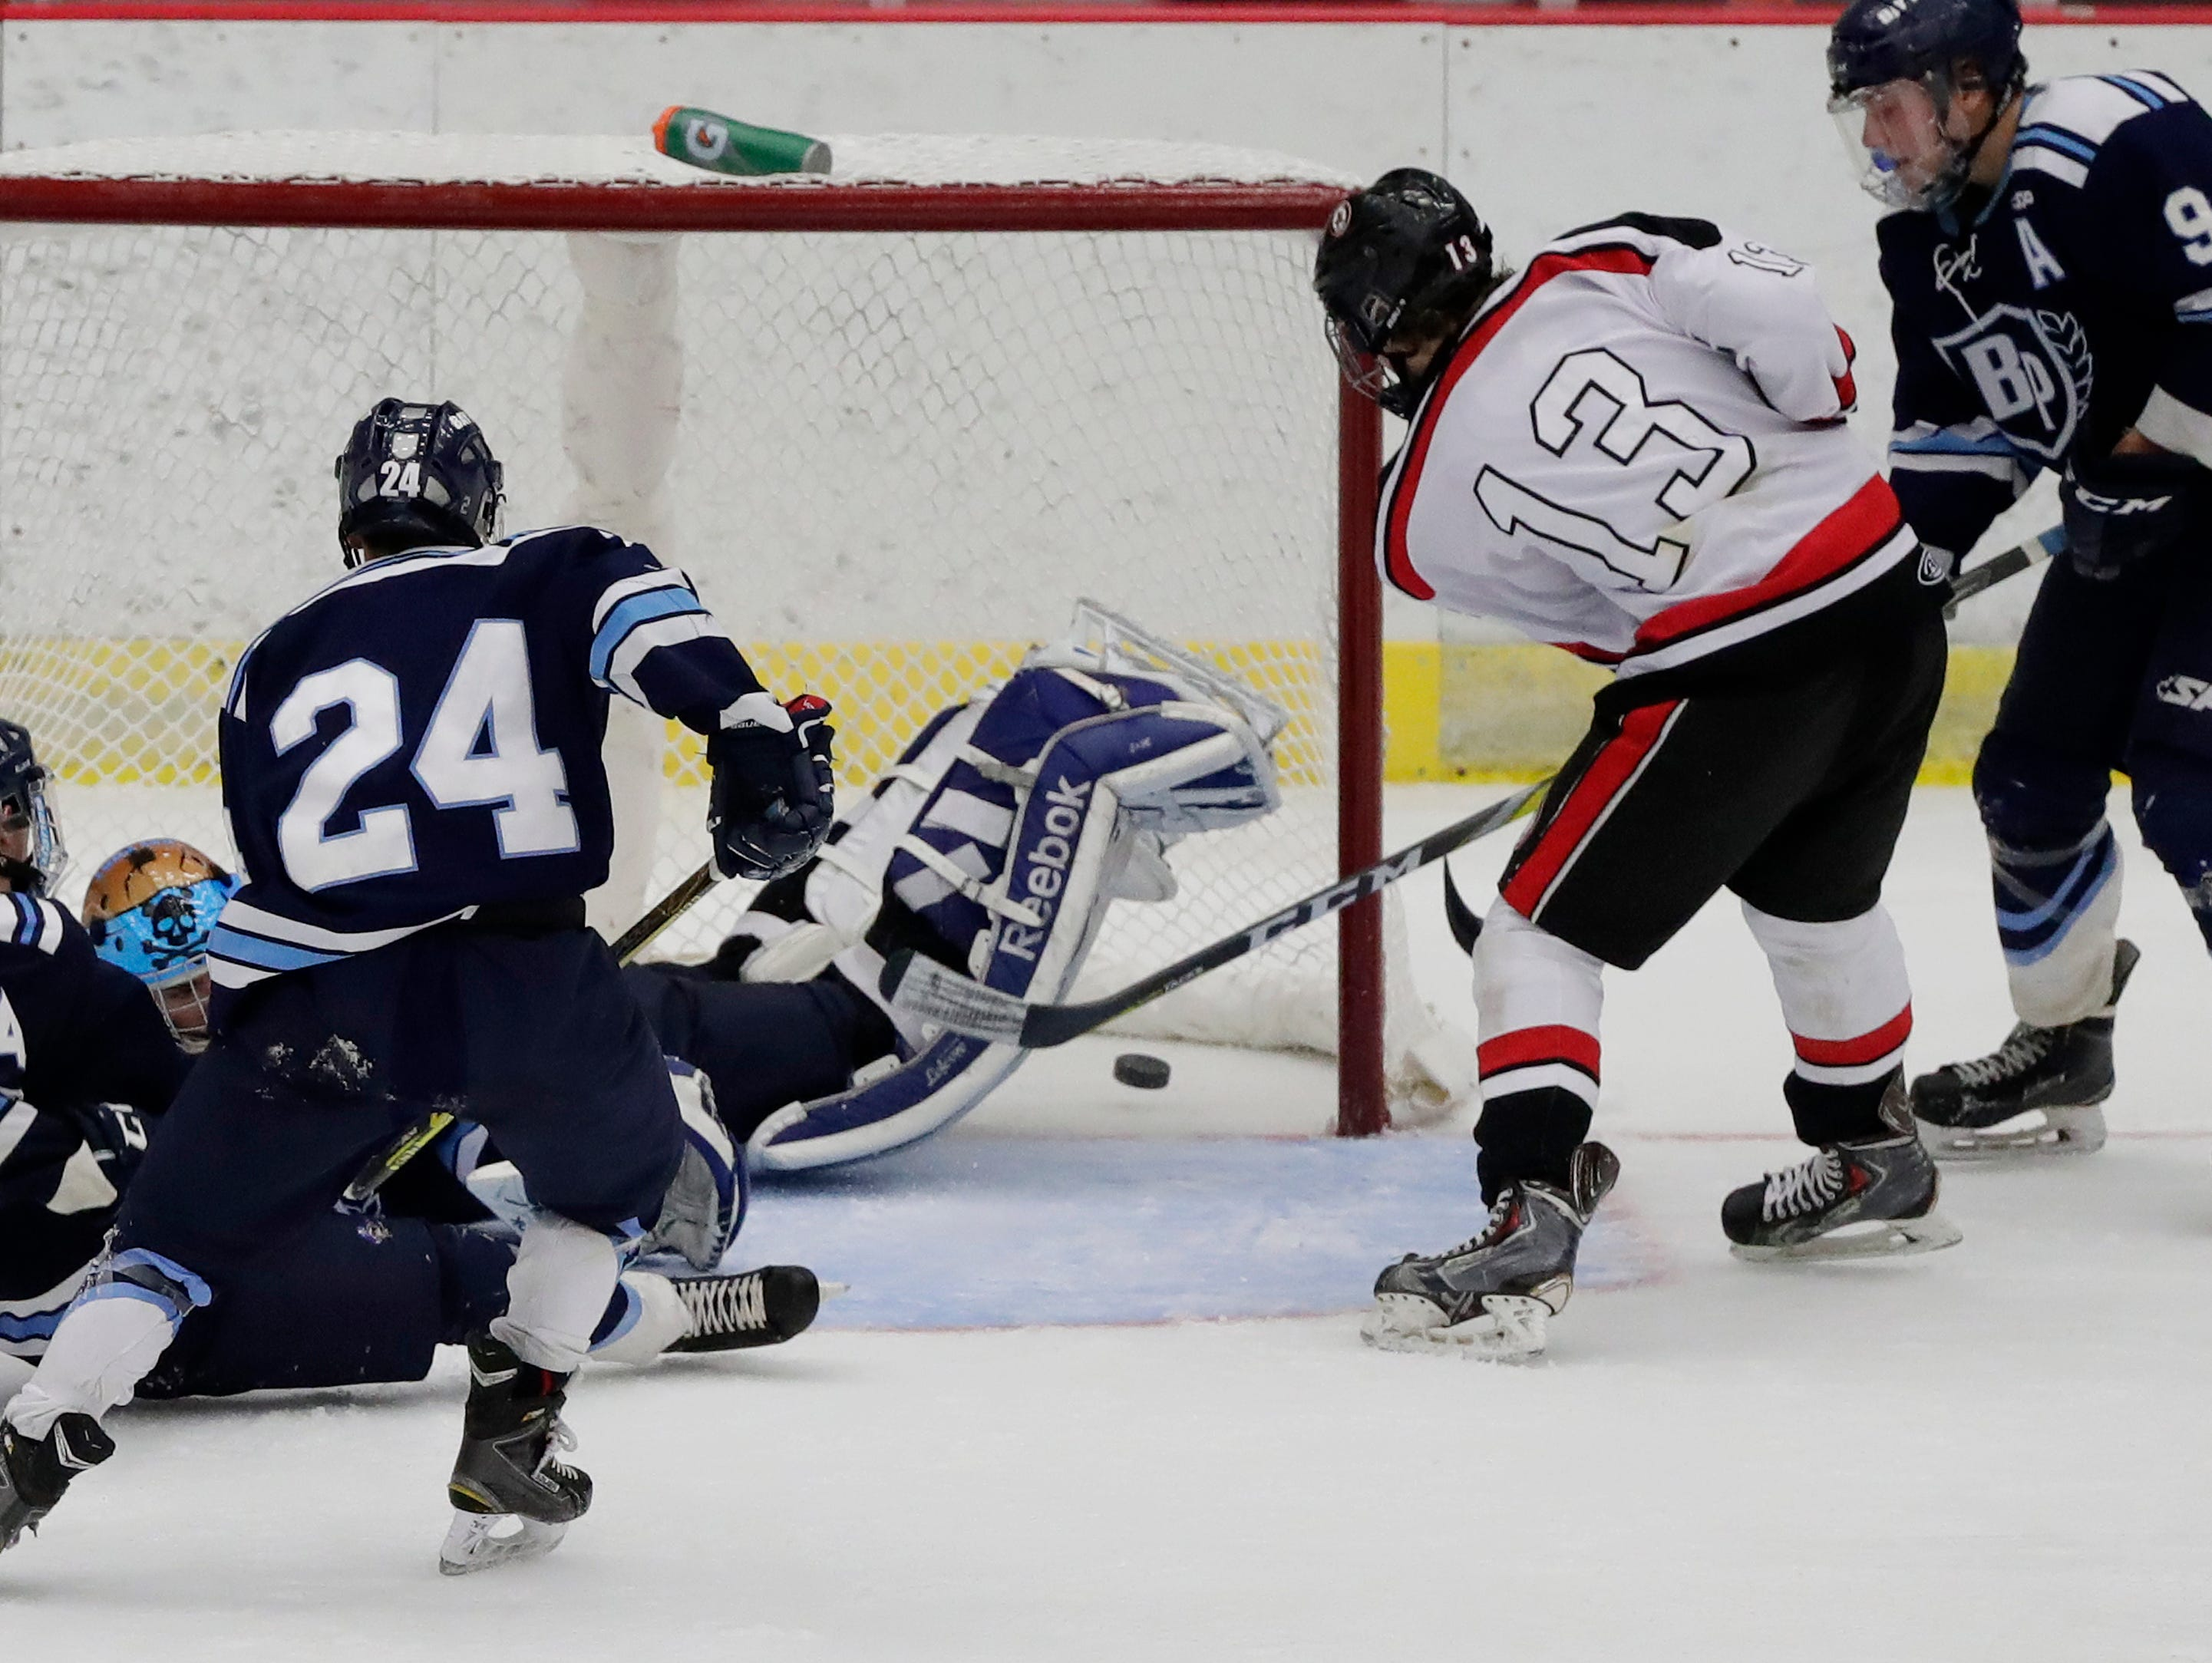 Sun Prairie Cardinals forward Josh McCrary (13) scores against the Bay Port Pirates to give the Cardinals a 3-2 lead with 14.1 seconds left in a quarterfinal match at the WIAA state hockey tournament at the Alliant Energy Center in Madison.